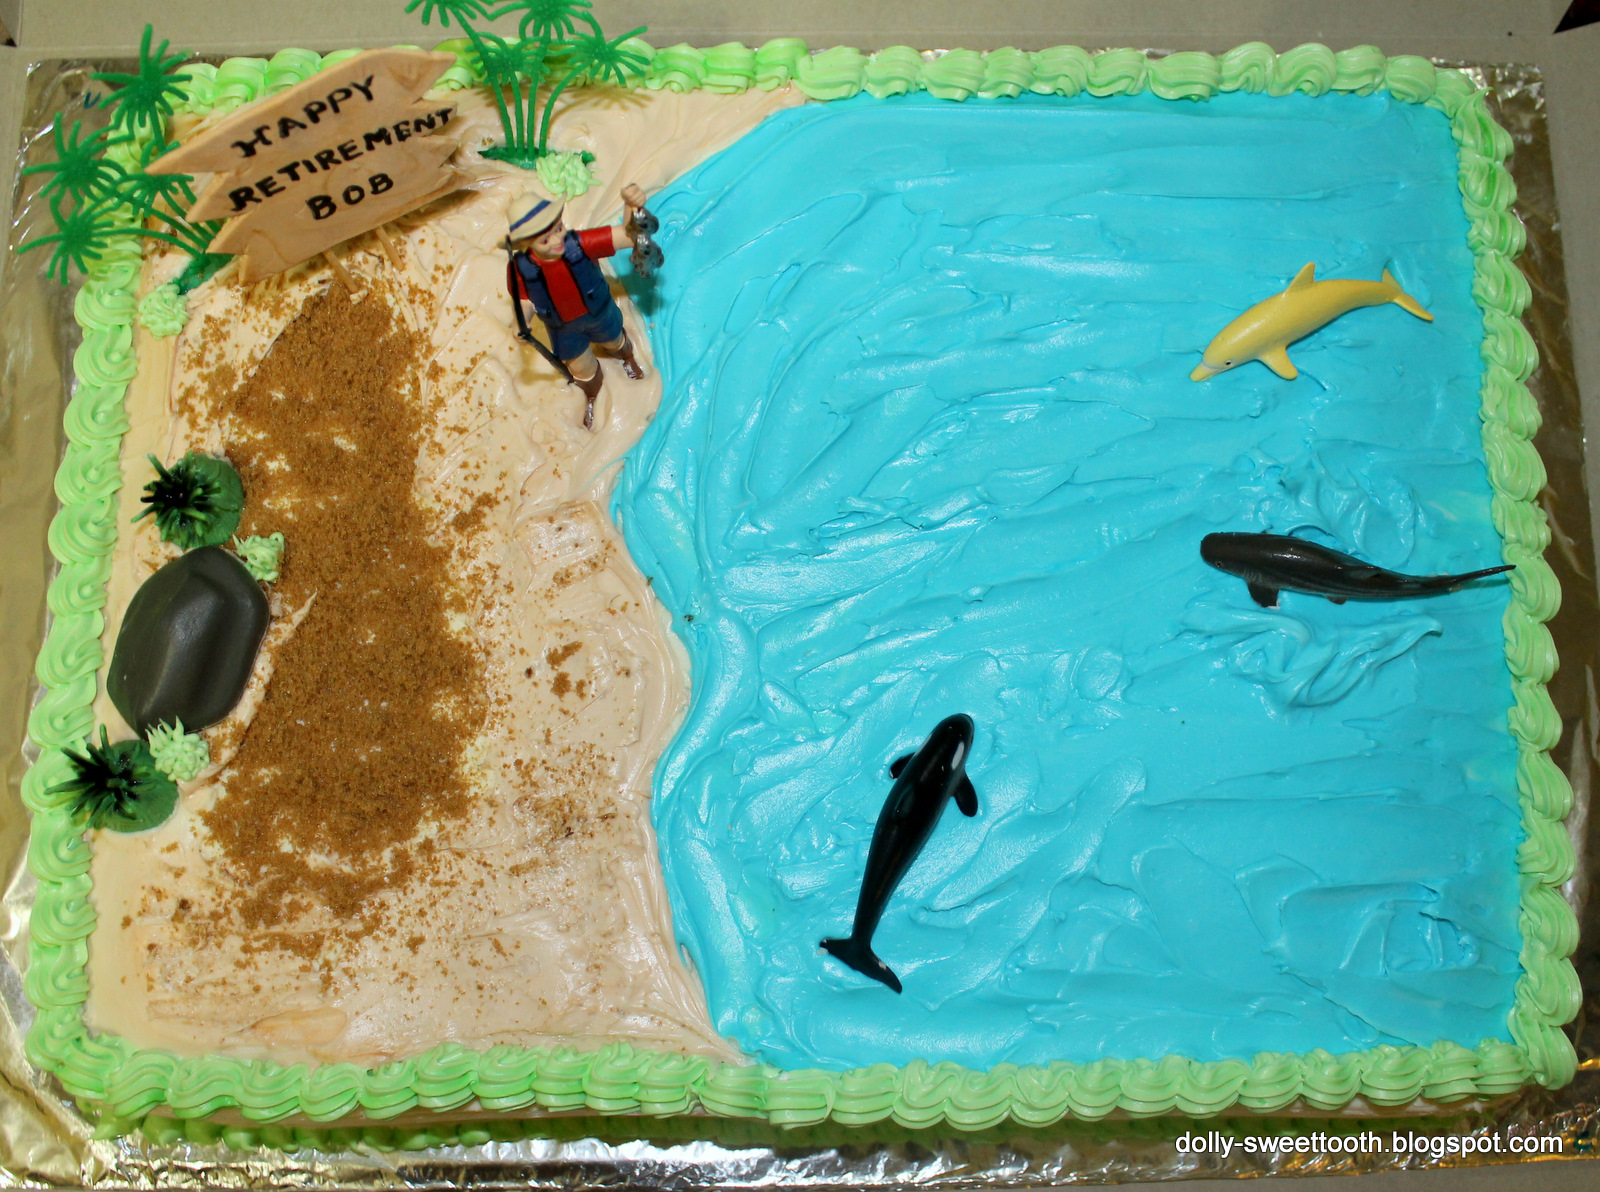 Curry And Beyond: Cake with a Fishing Theme- Retirement Cake